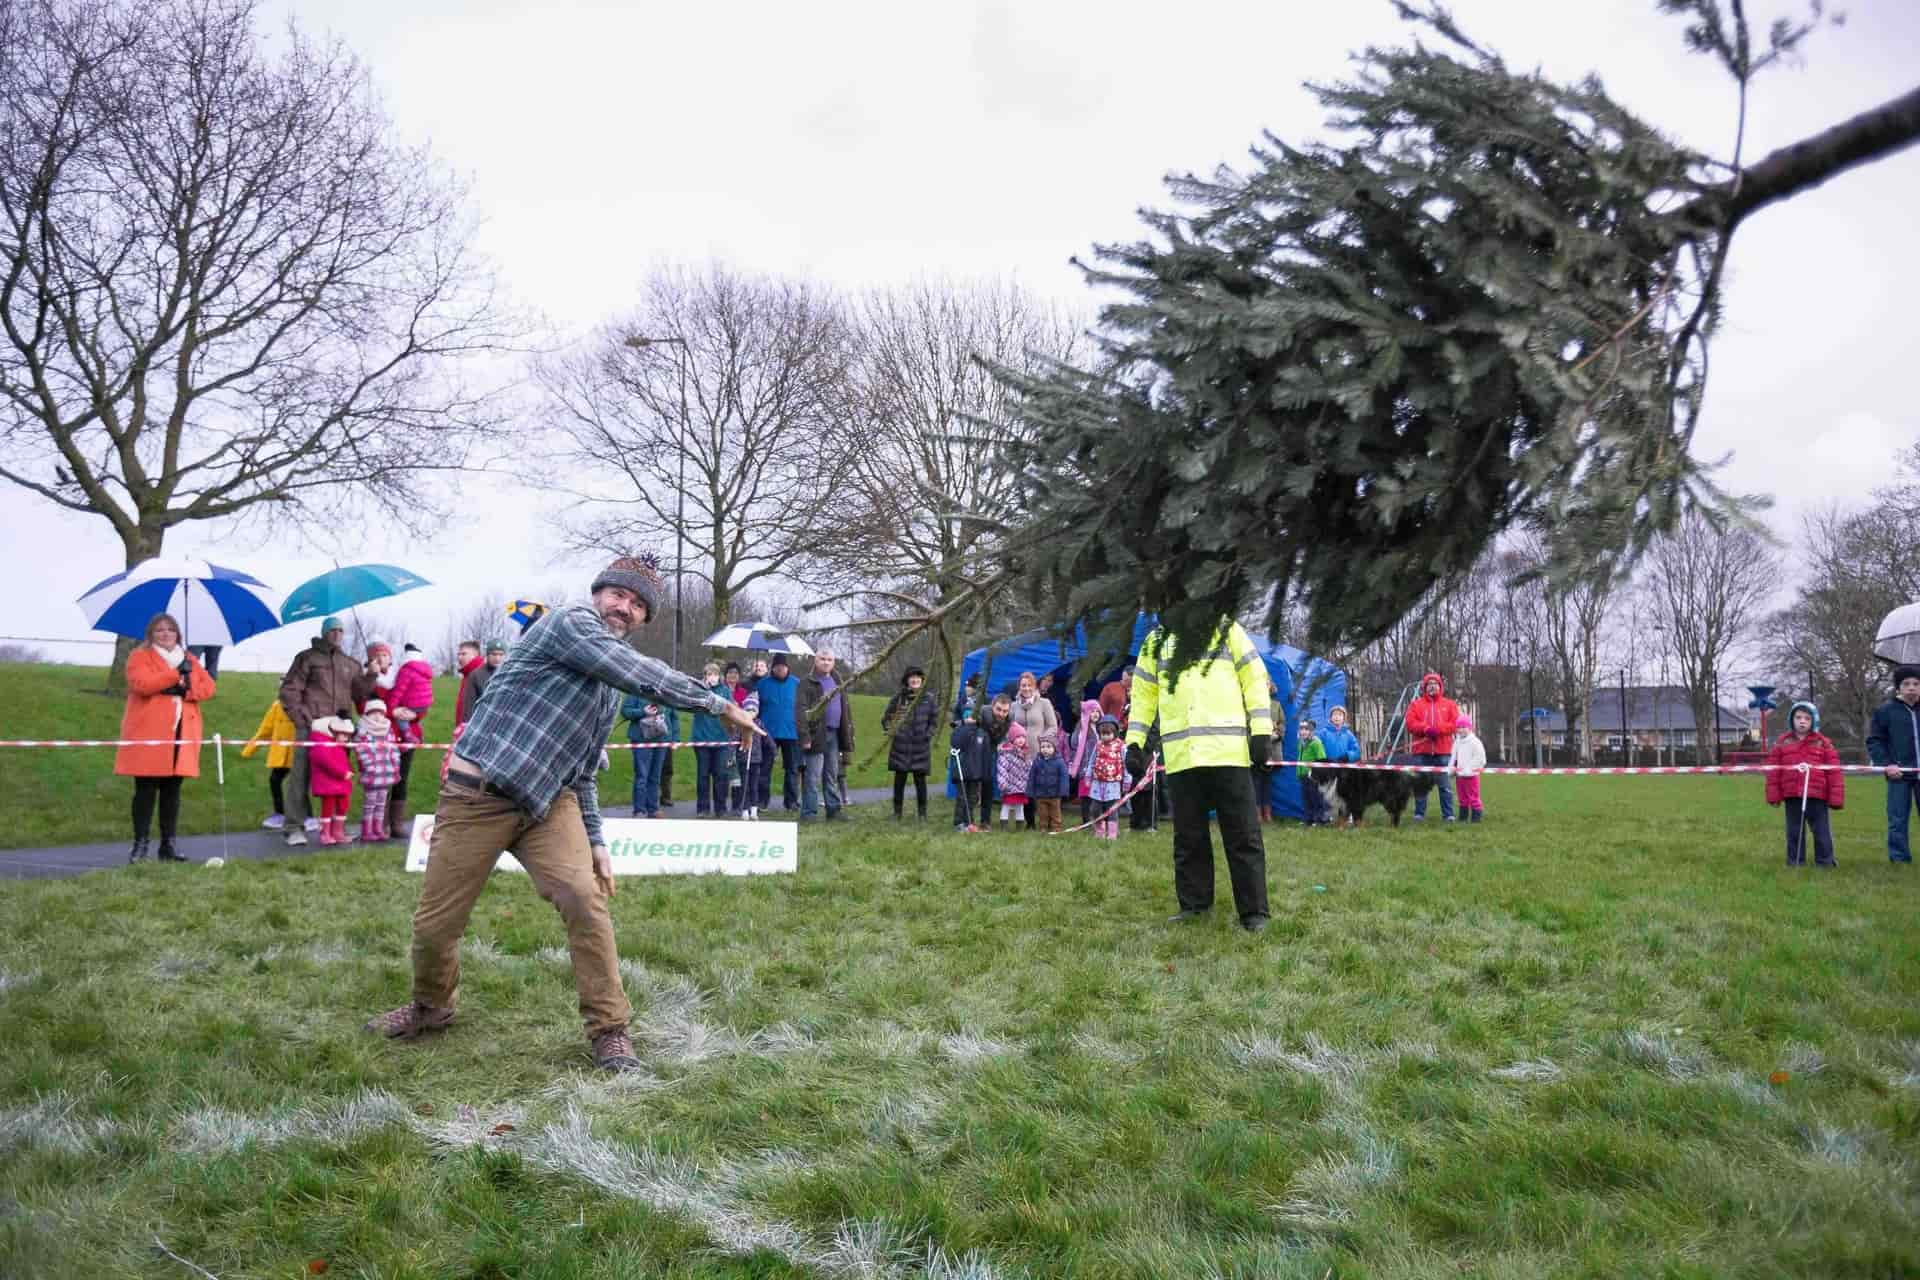 Garry O'Growney, Kilfenora competing in the Irish Christmas Tree Throwing Championships at Tim Smyth park, Ennis. Photograph by Eamon Ward